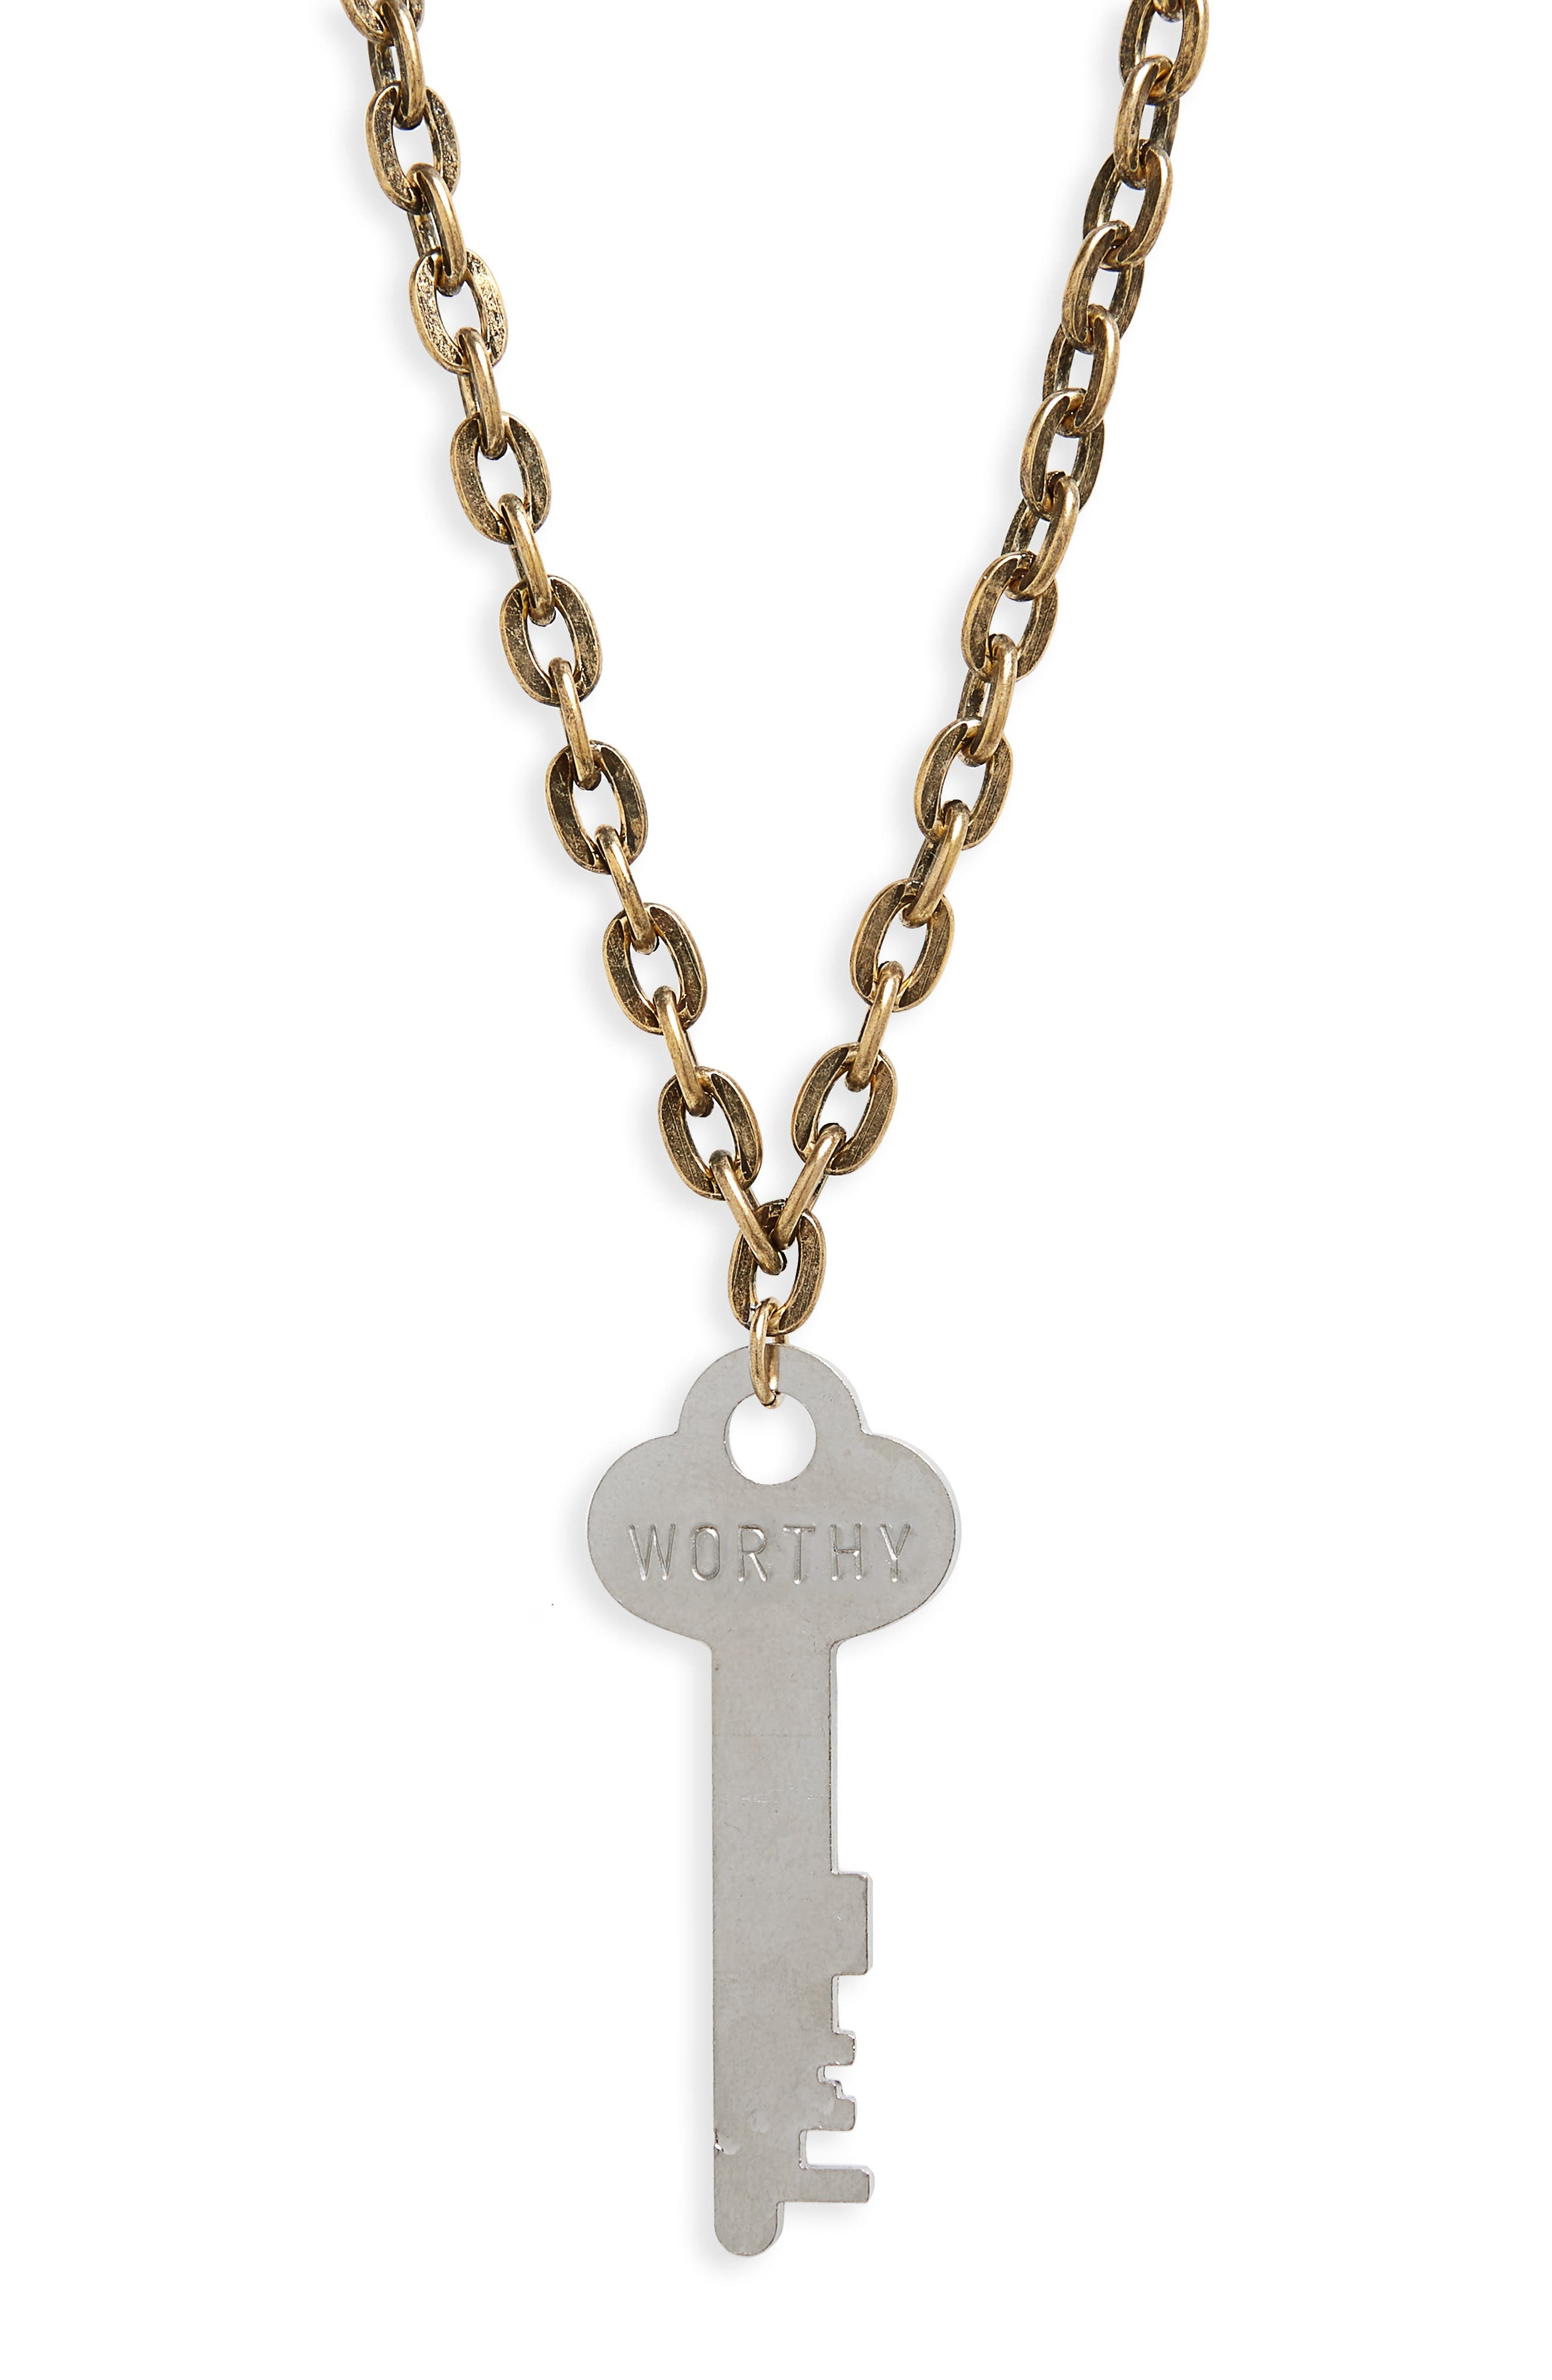 I Am Worthy Key Charm Necklace,                             Alternate thumbnail 3, color,                             Gold/ Silver Key